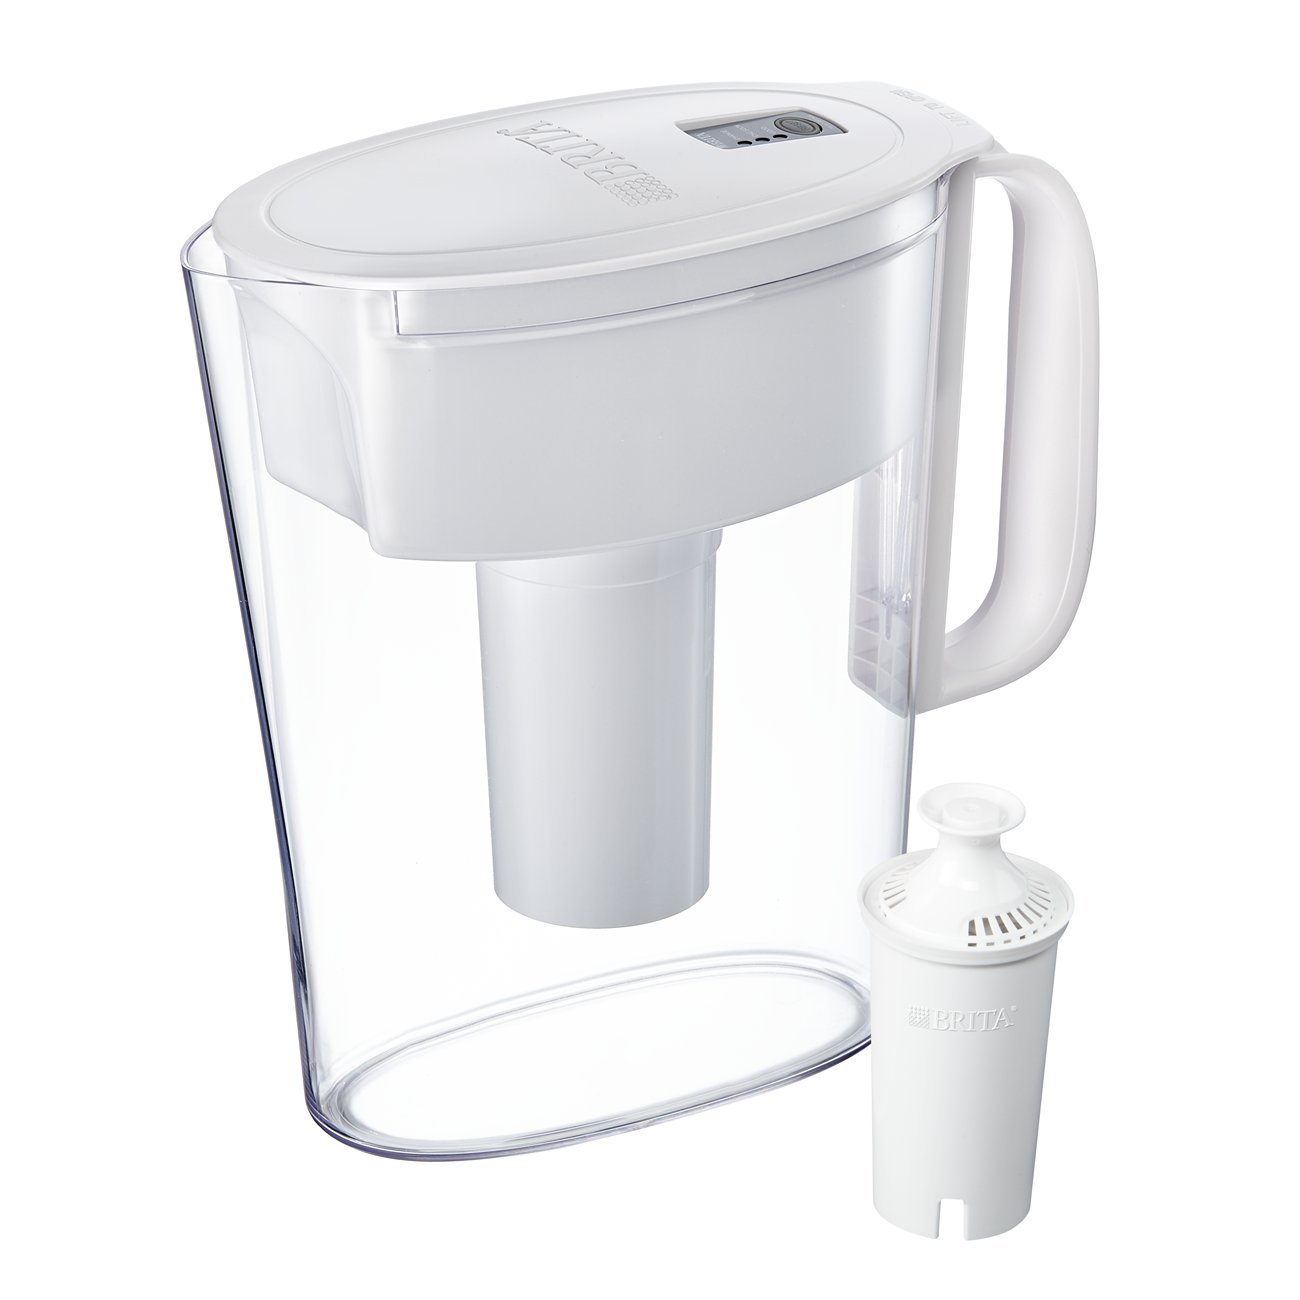 Brita Small 5 Cup Water Filter Pitcher with 1 Standard Filter, BPA Free – Metro, White